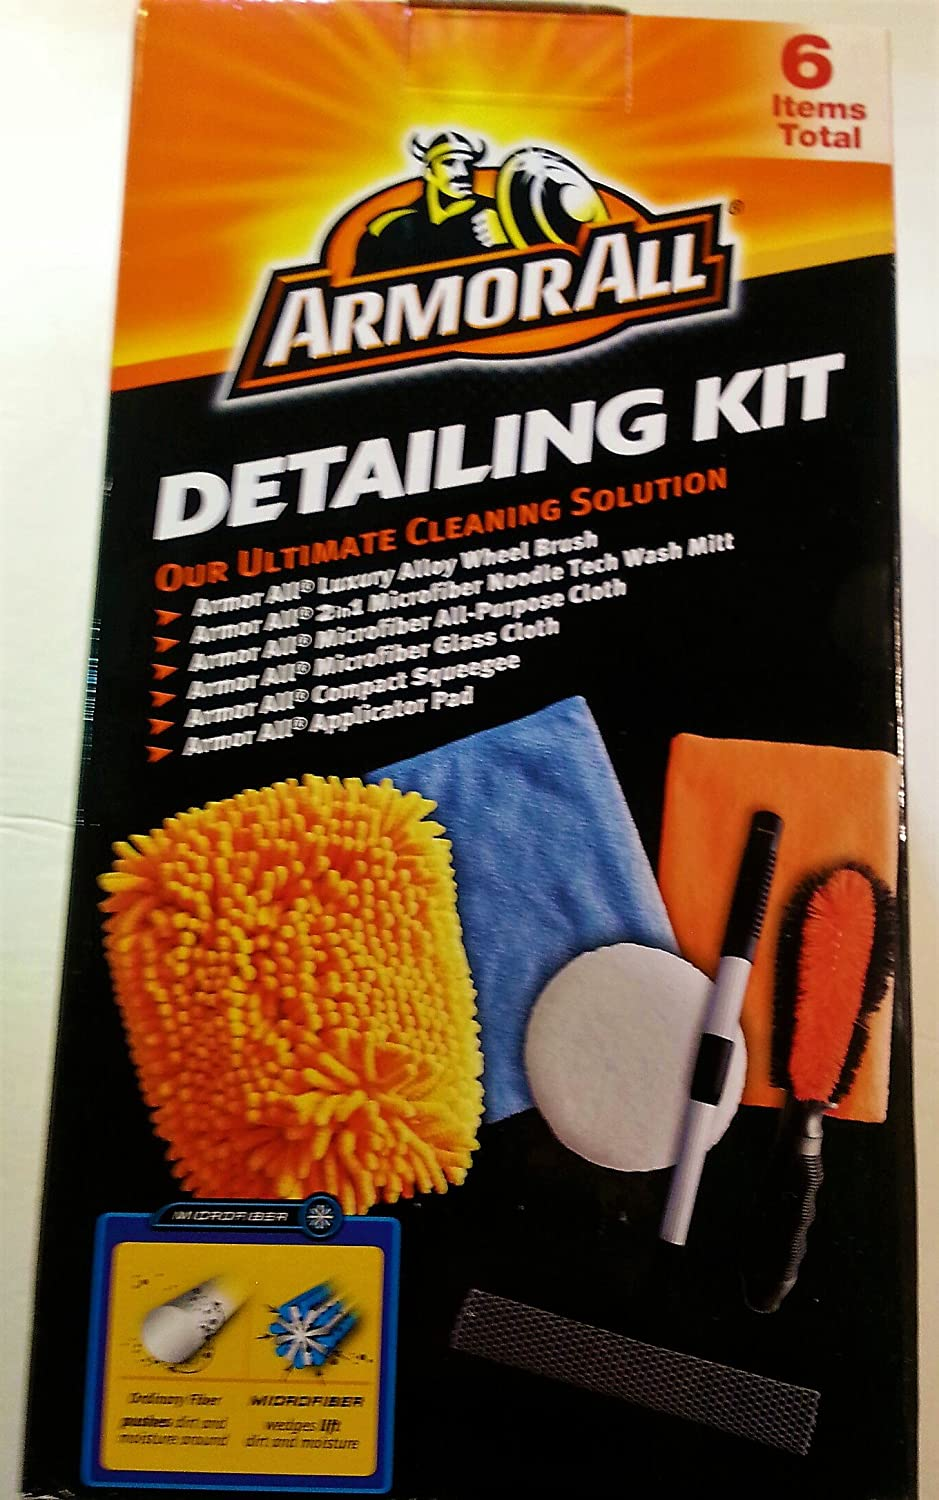 ArmorAll Ultimate Cleaning Solution Detailing Kit, 6 Items in Kit STP Products